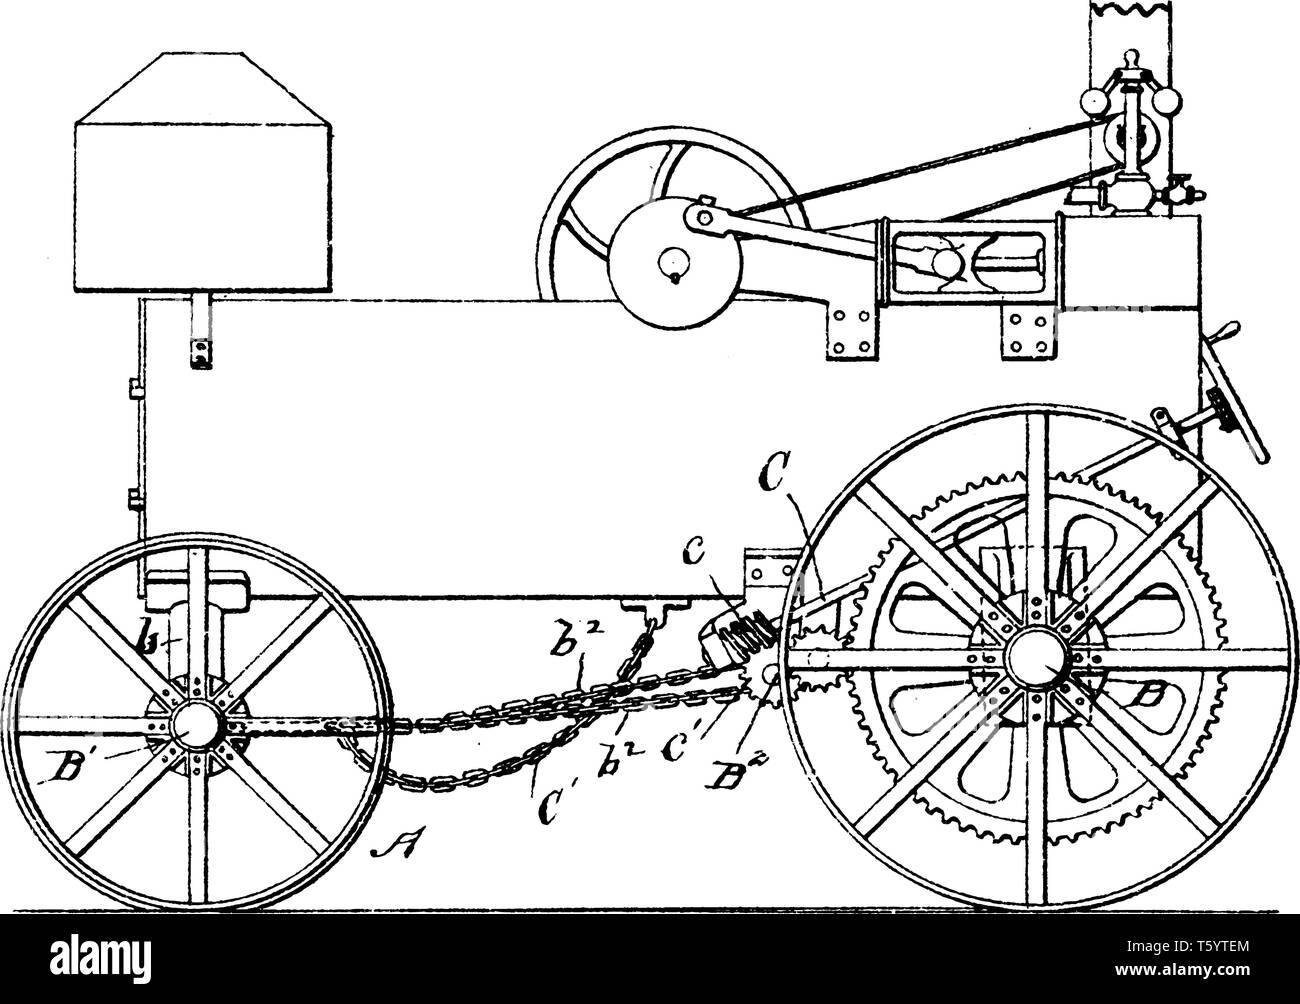 hight resolution of for wheeled road engine is features traction wheels the crank shaft is adapted to rotate continuously